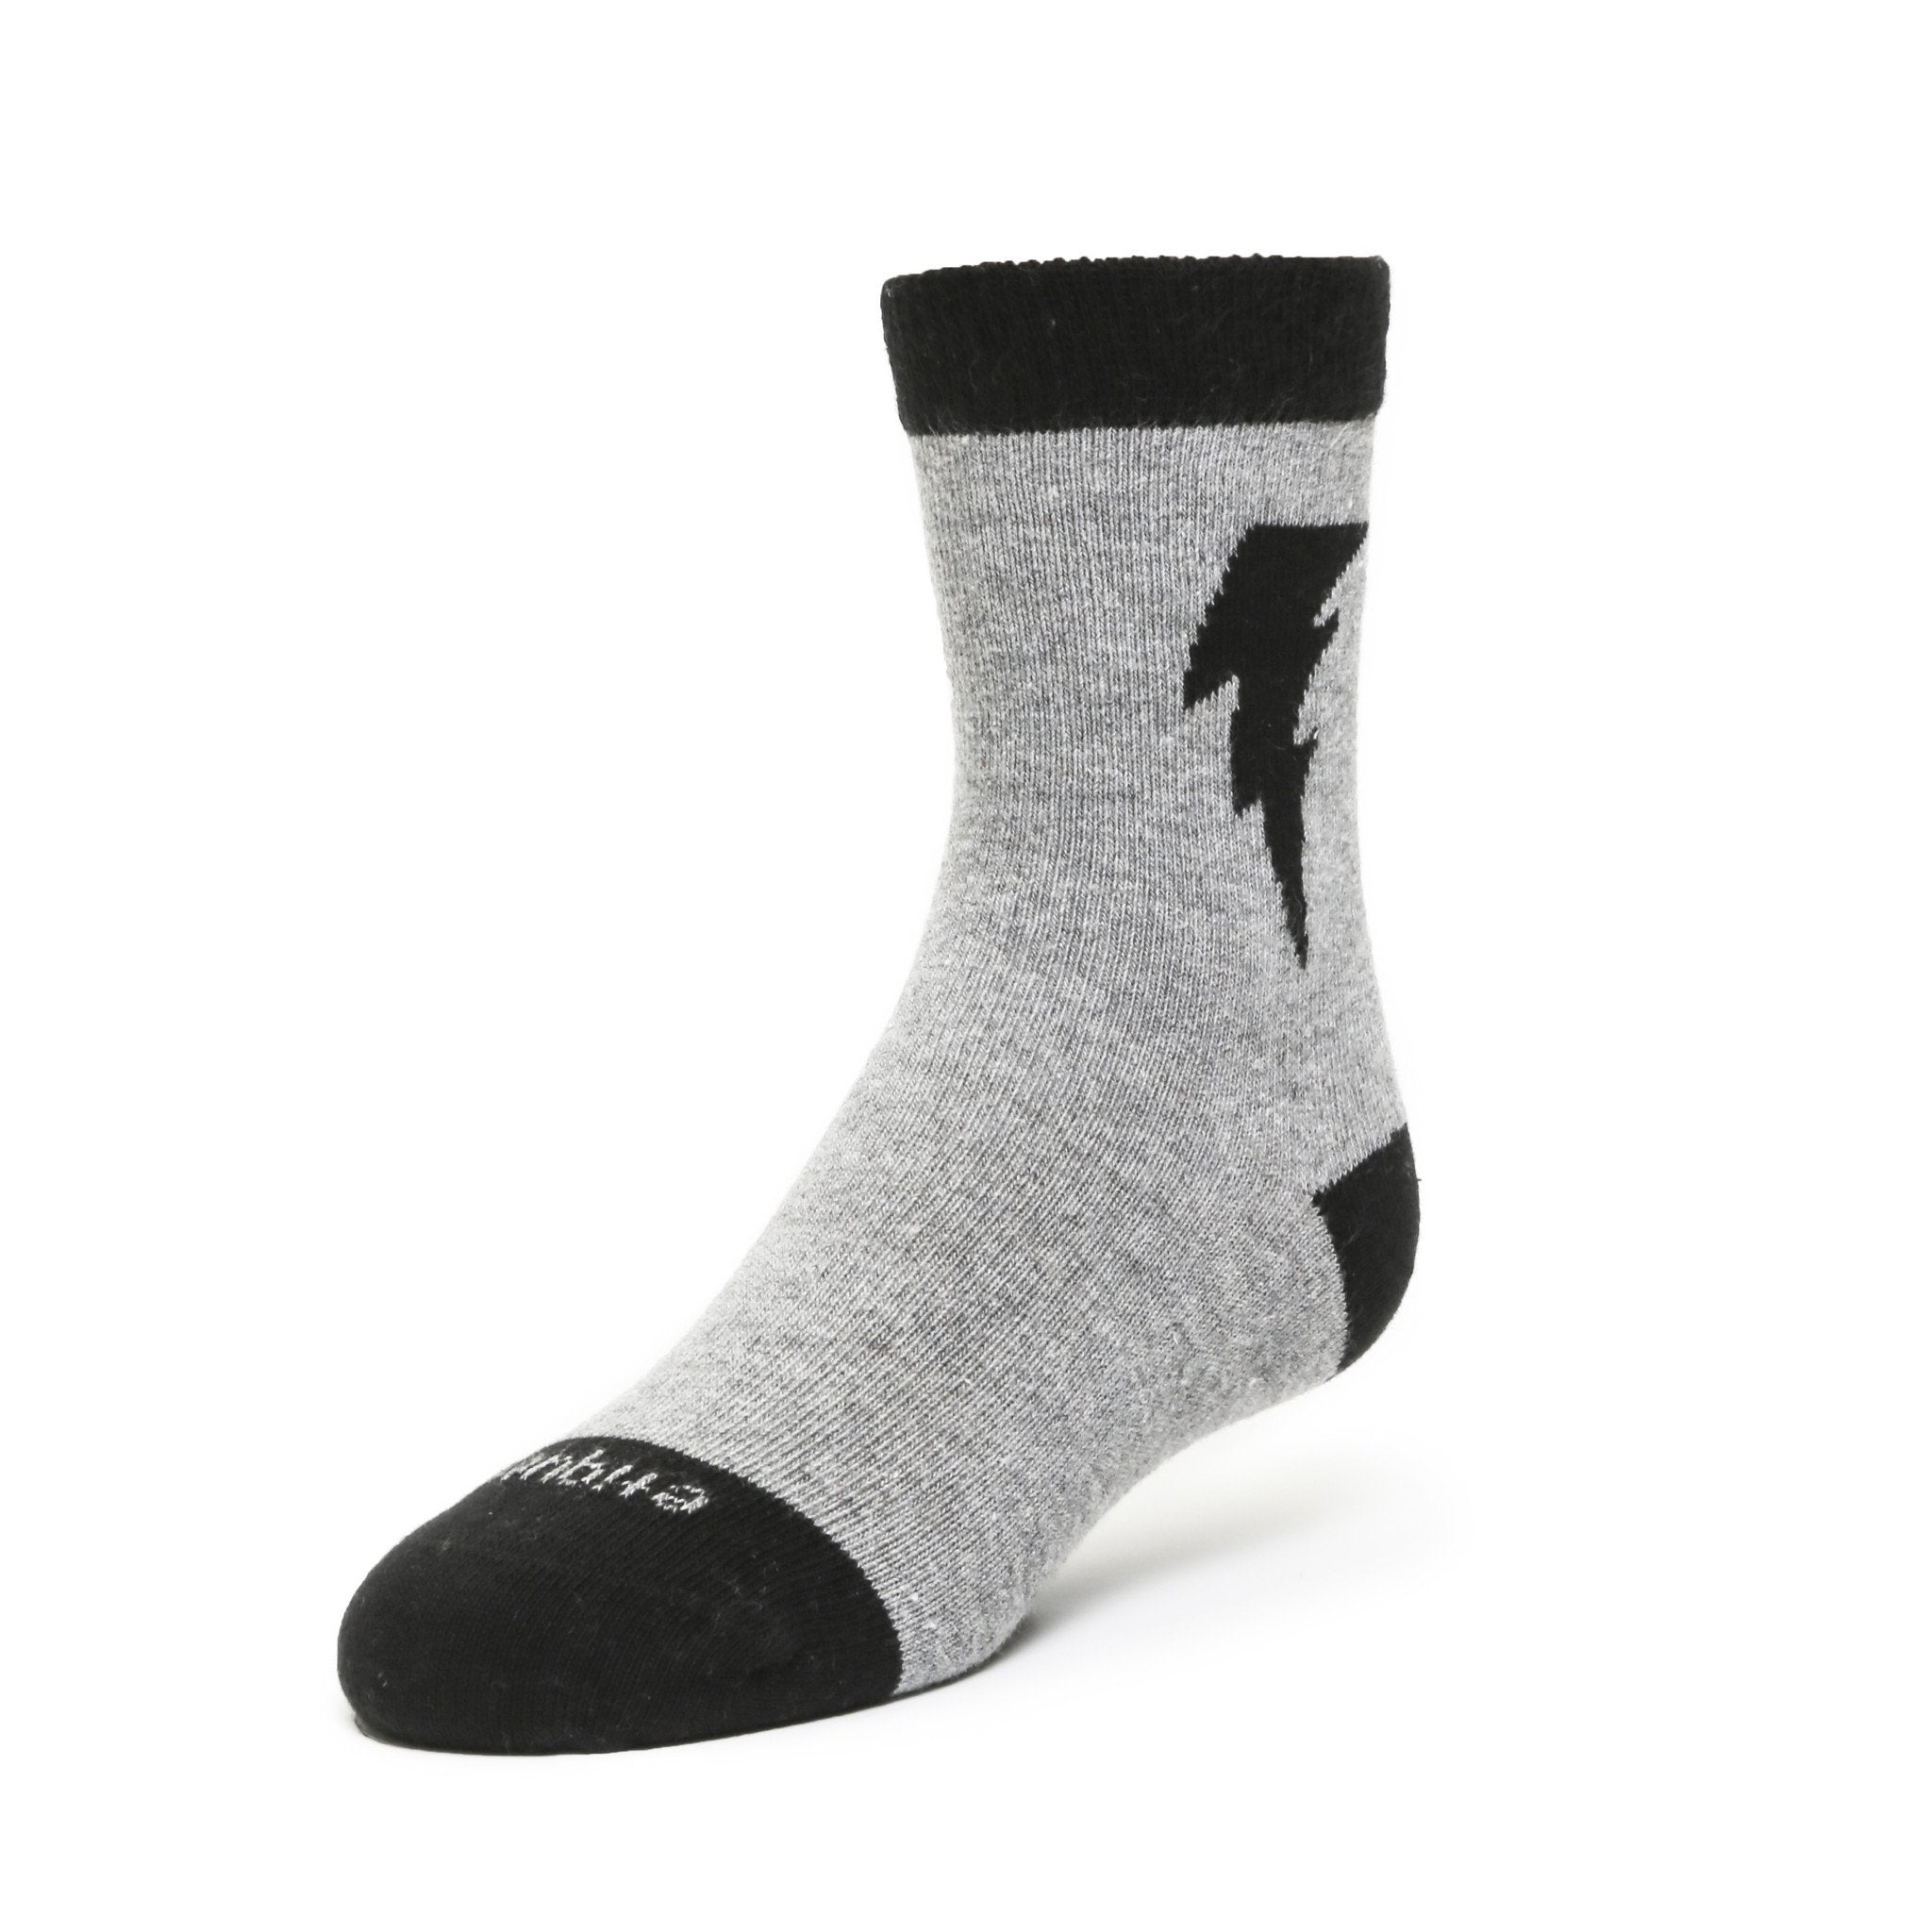 Kids Socks - Bolt - Ash Grey Heather⎪Etiquette Clothiers